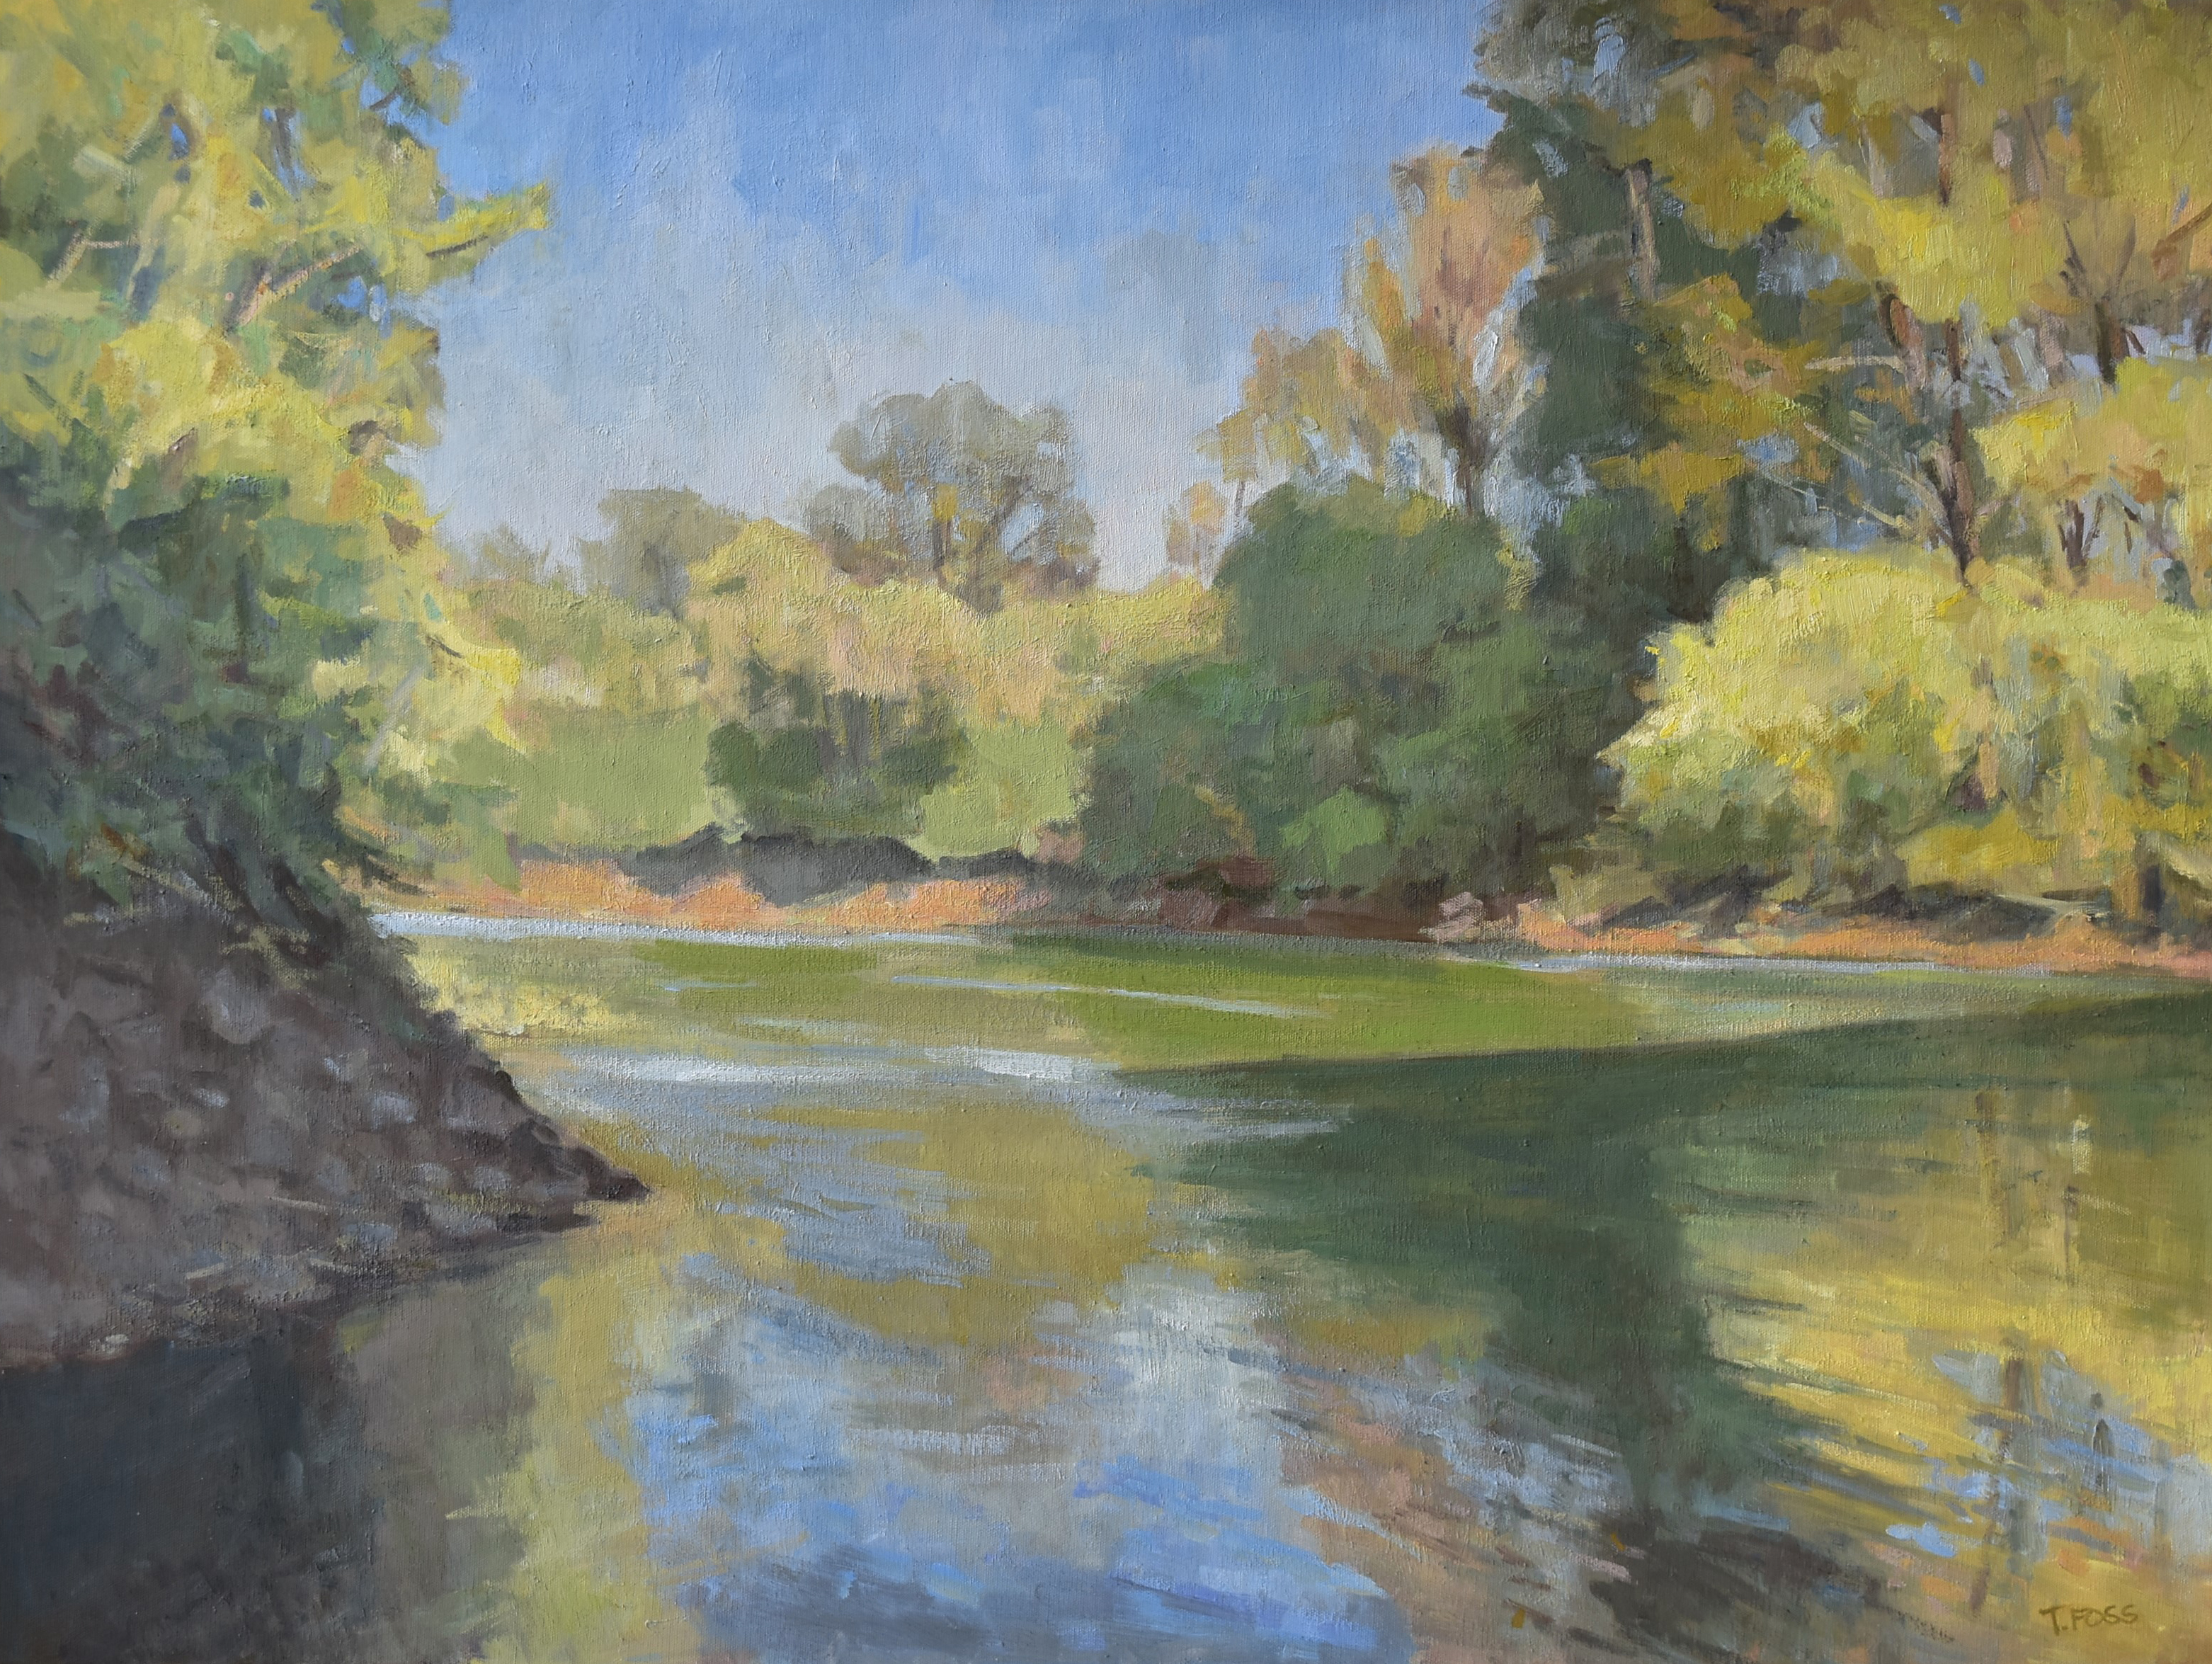 Shade at the River